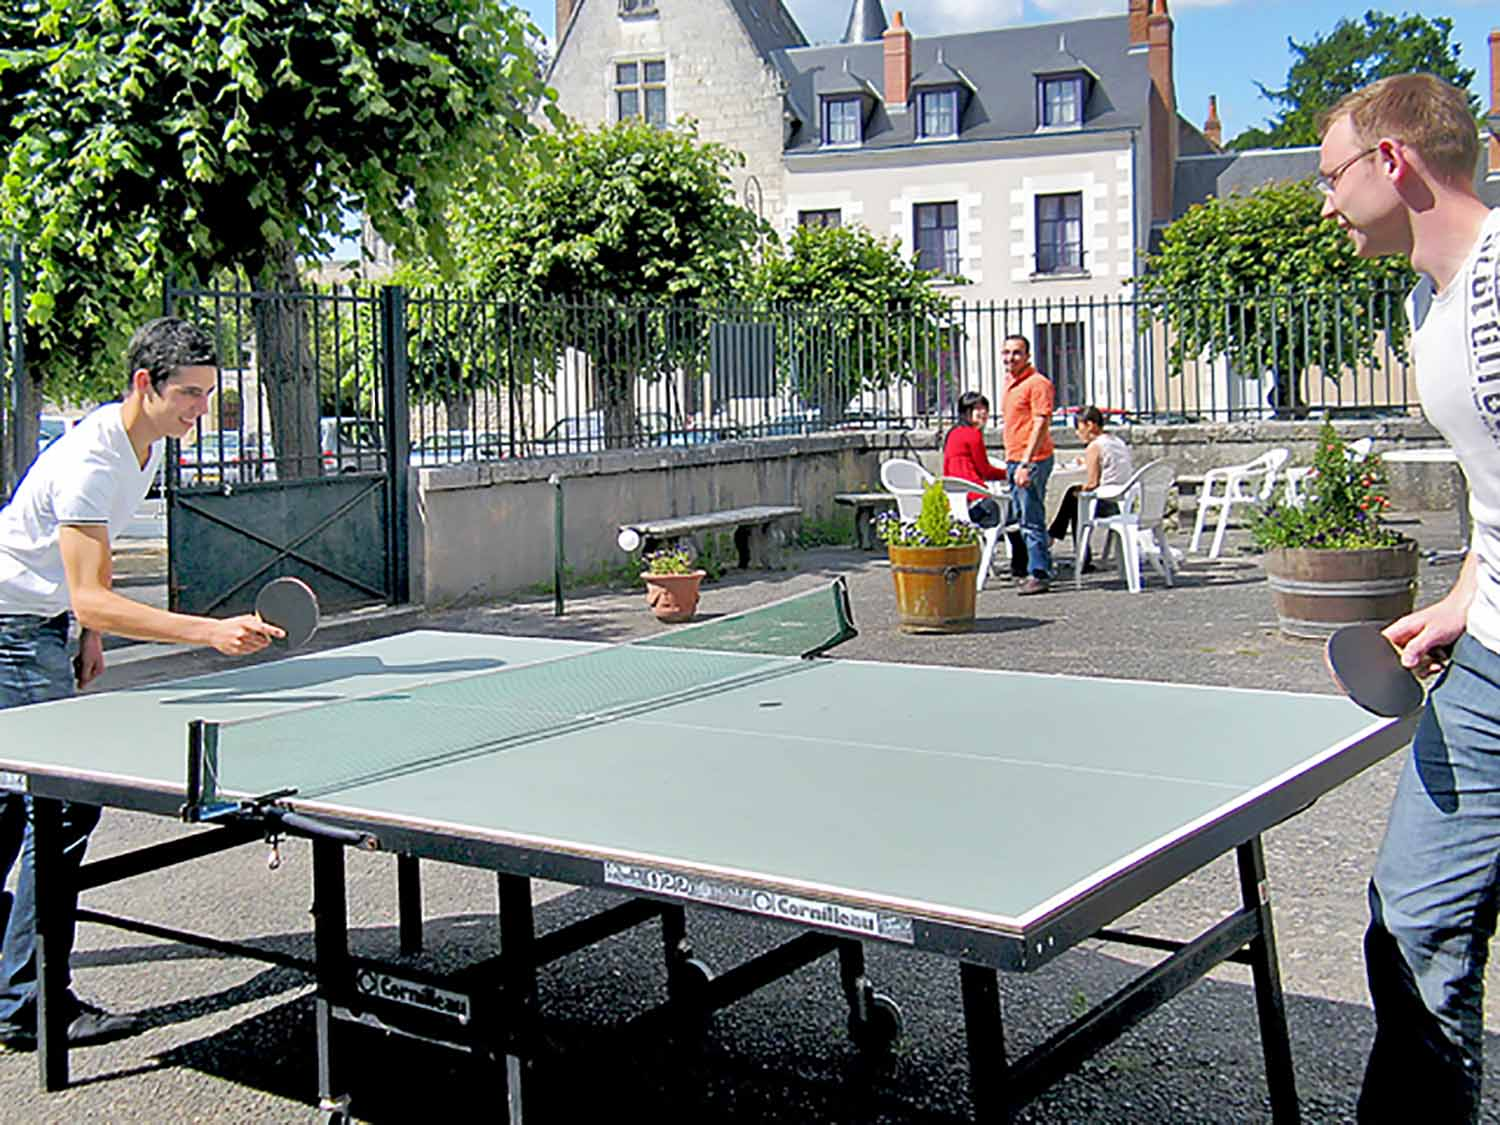 Amboise_School_Surroundings_01_Preview_large